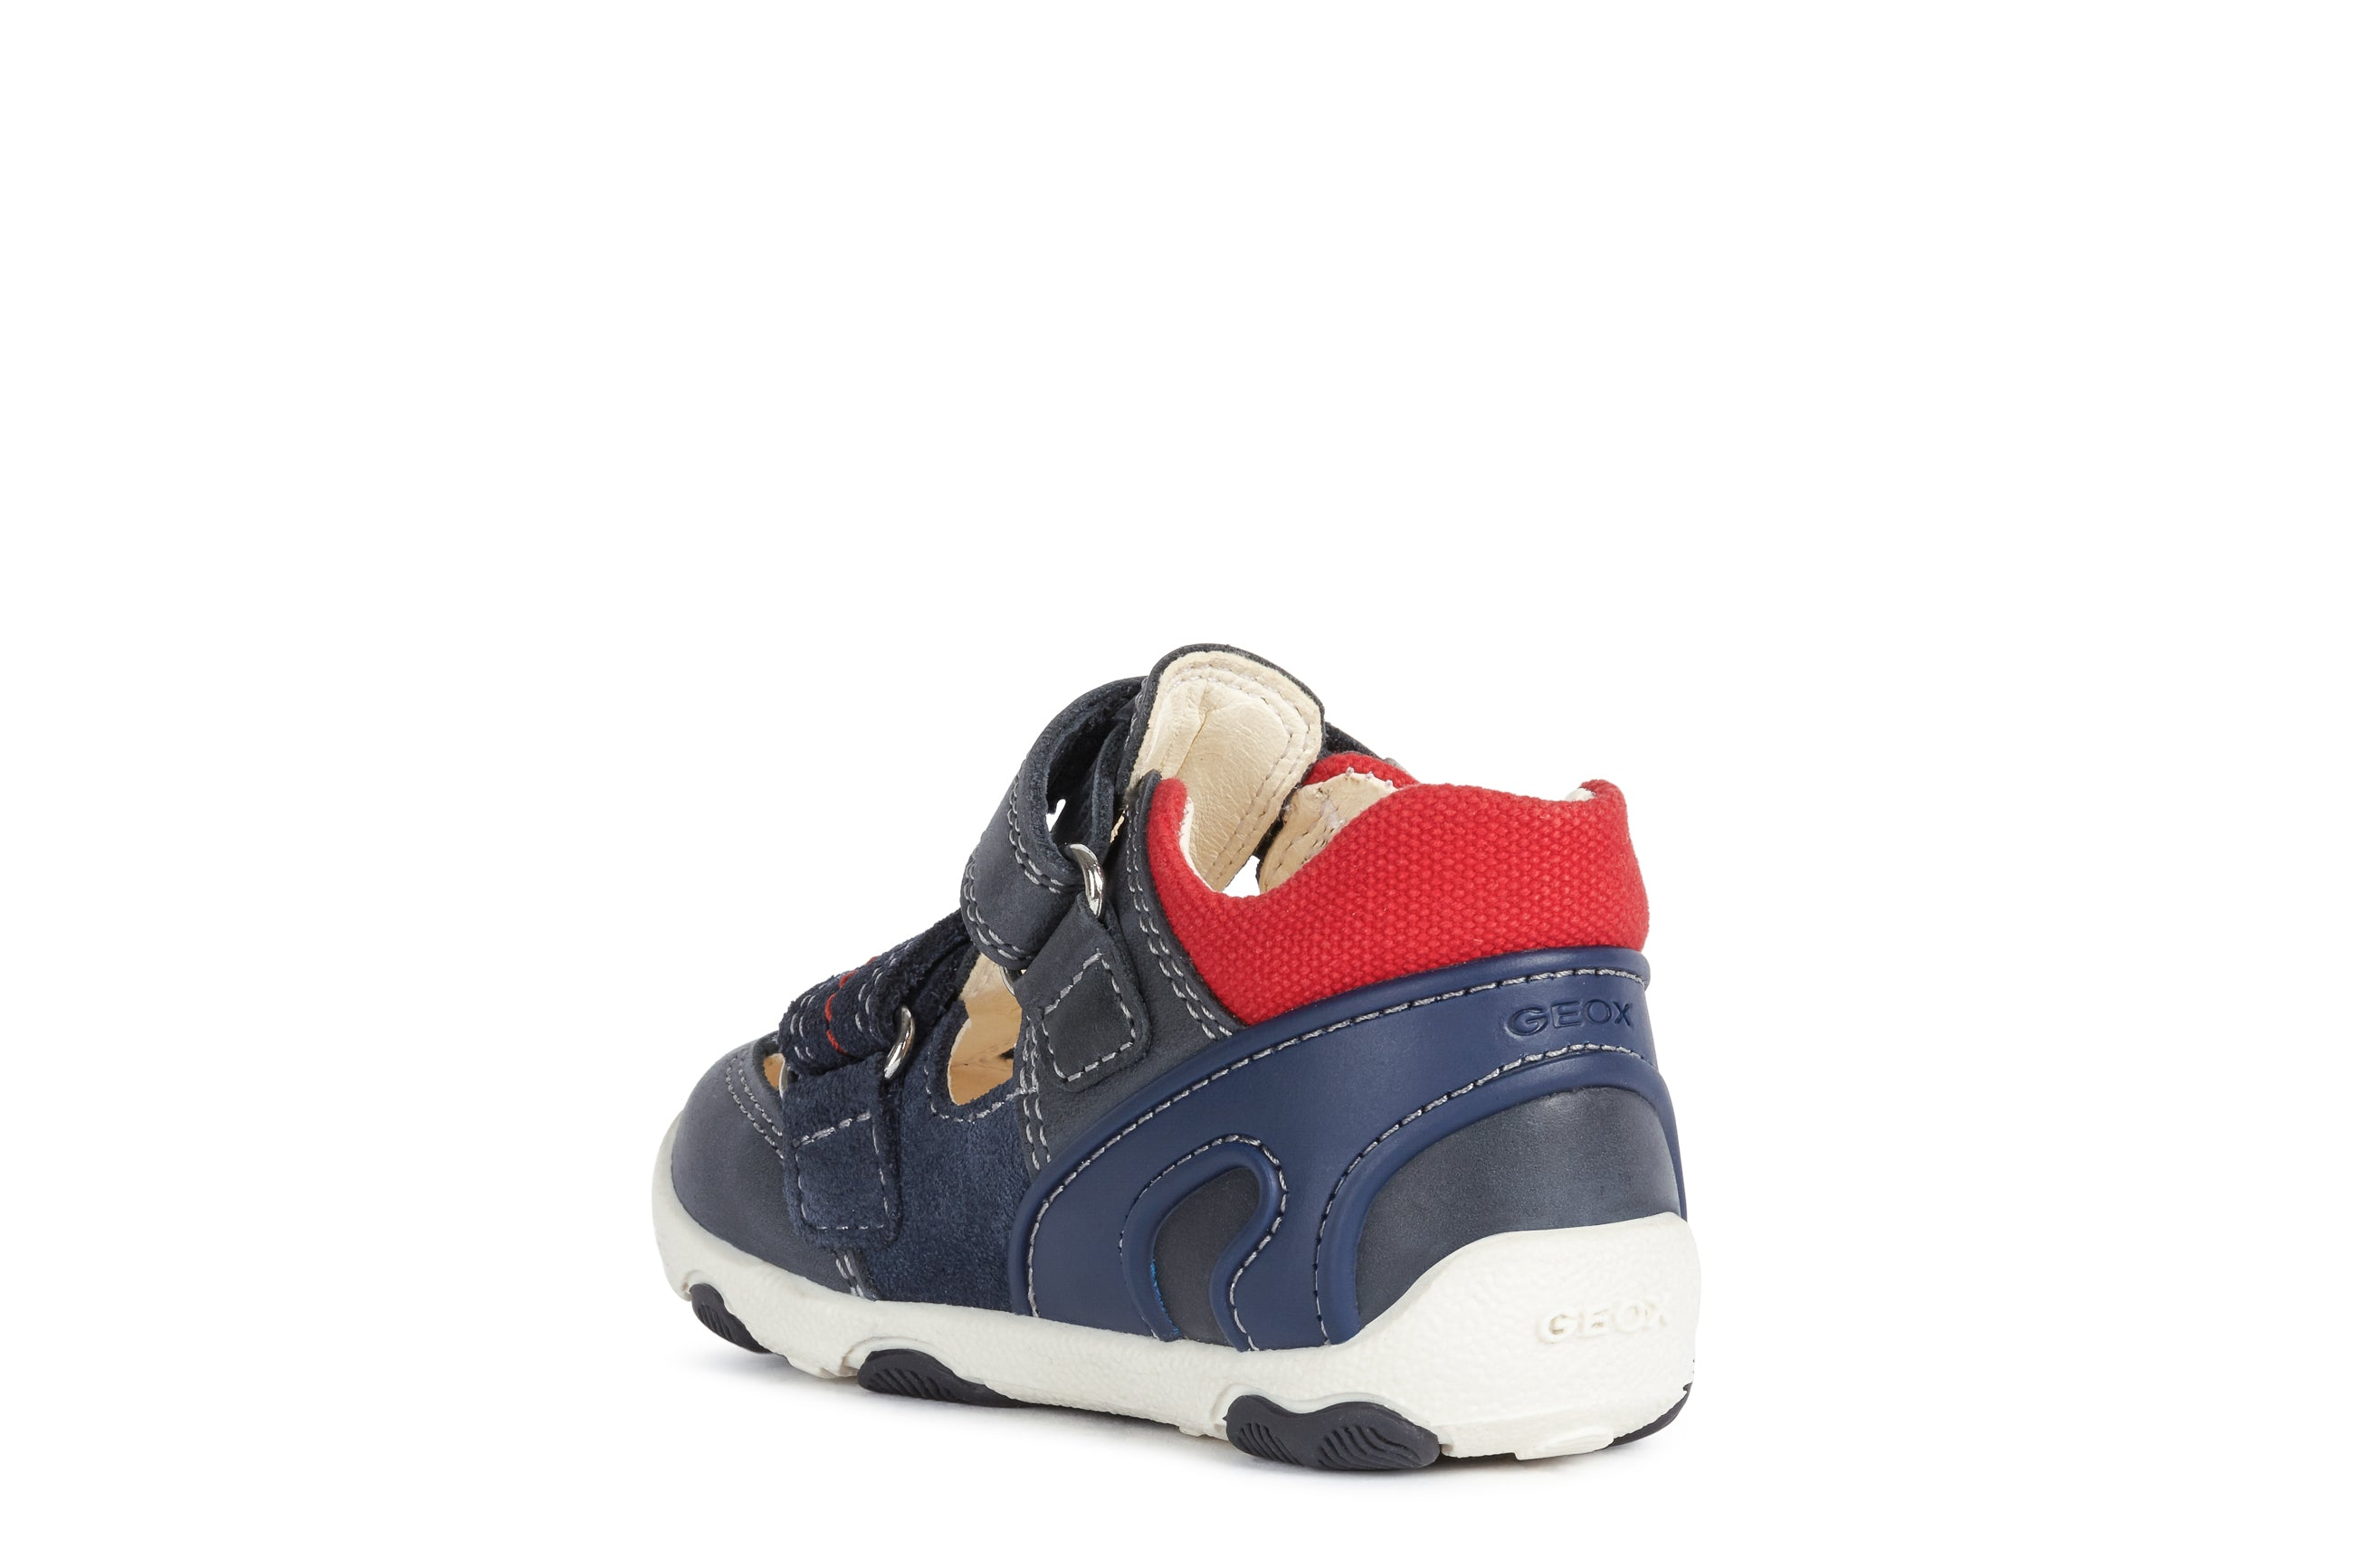 GEOX B150PA NAVY/RED